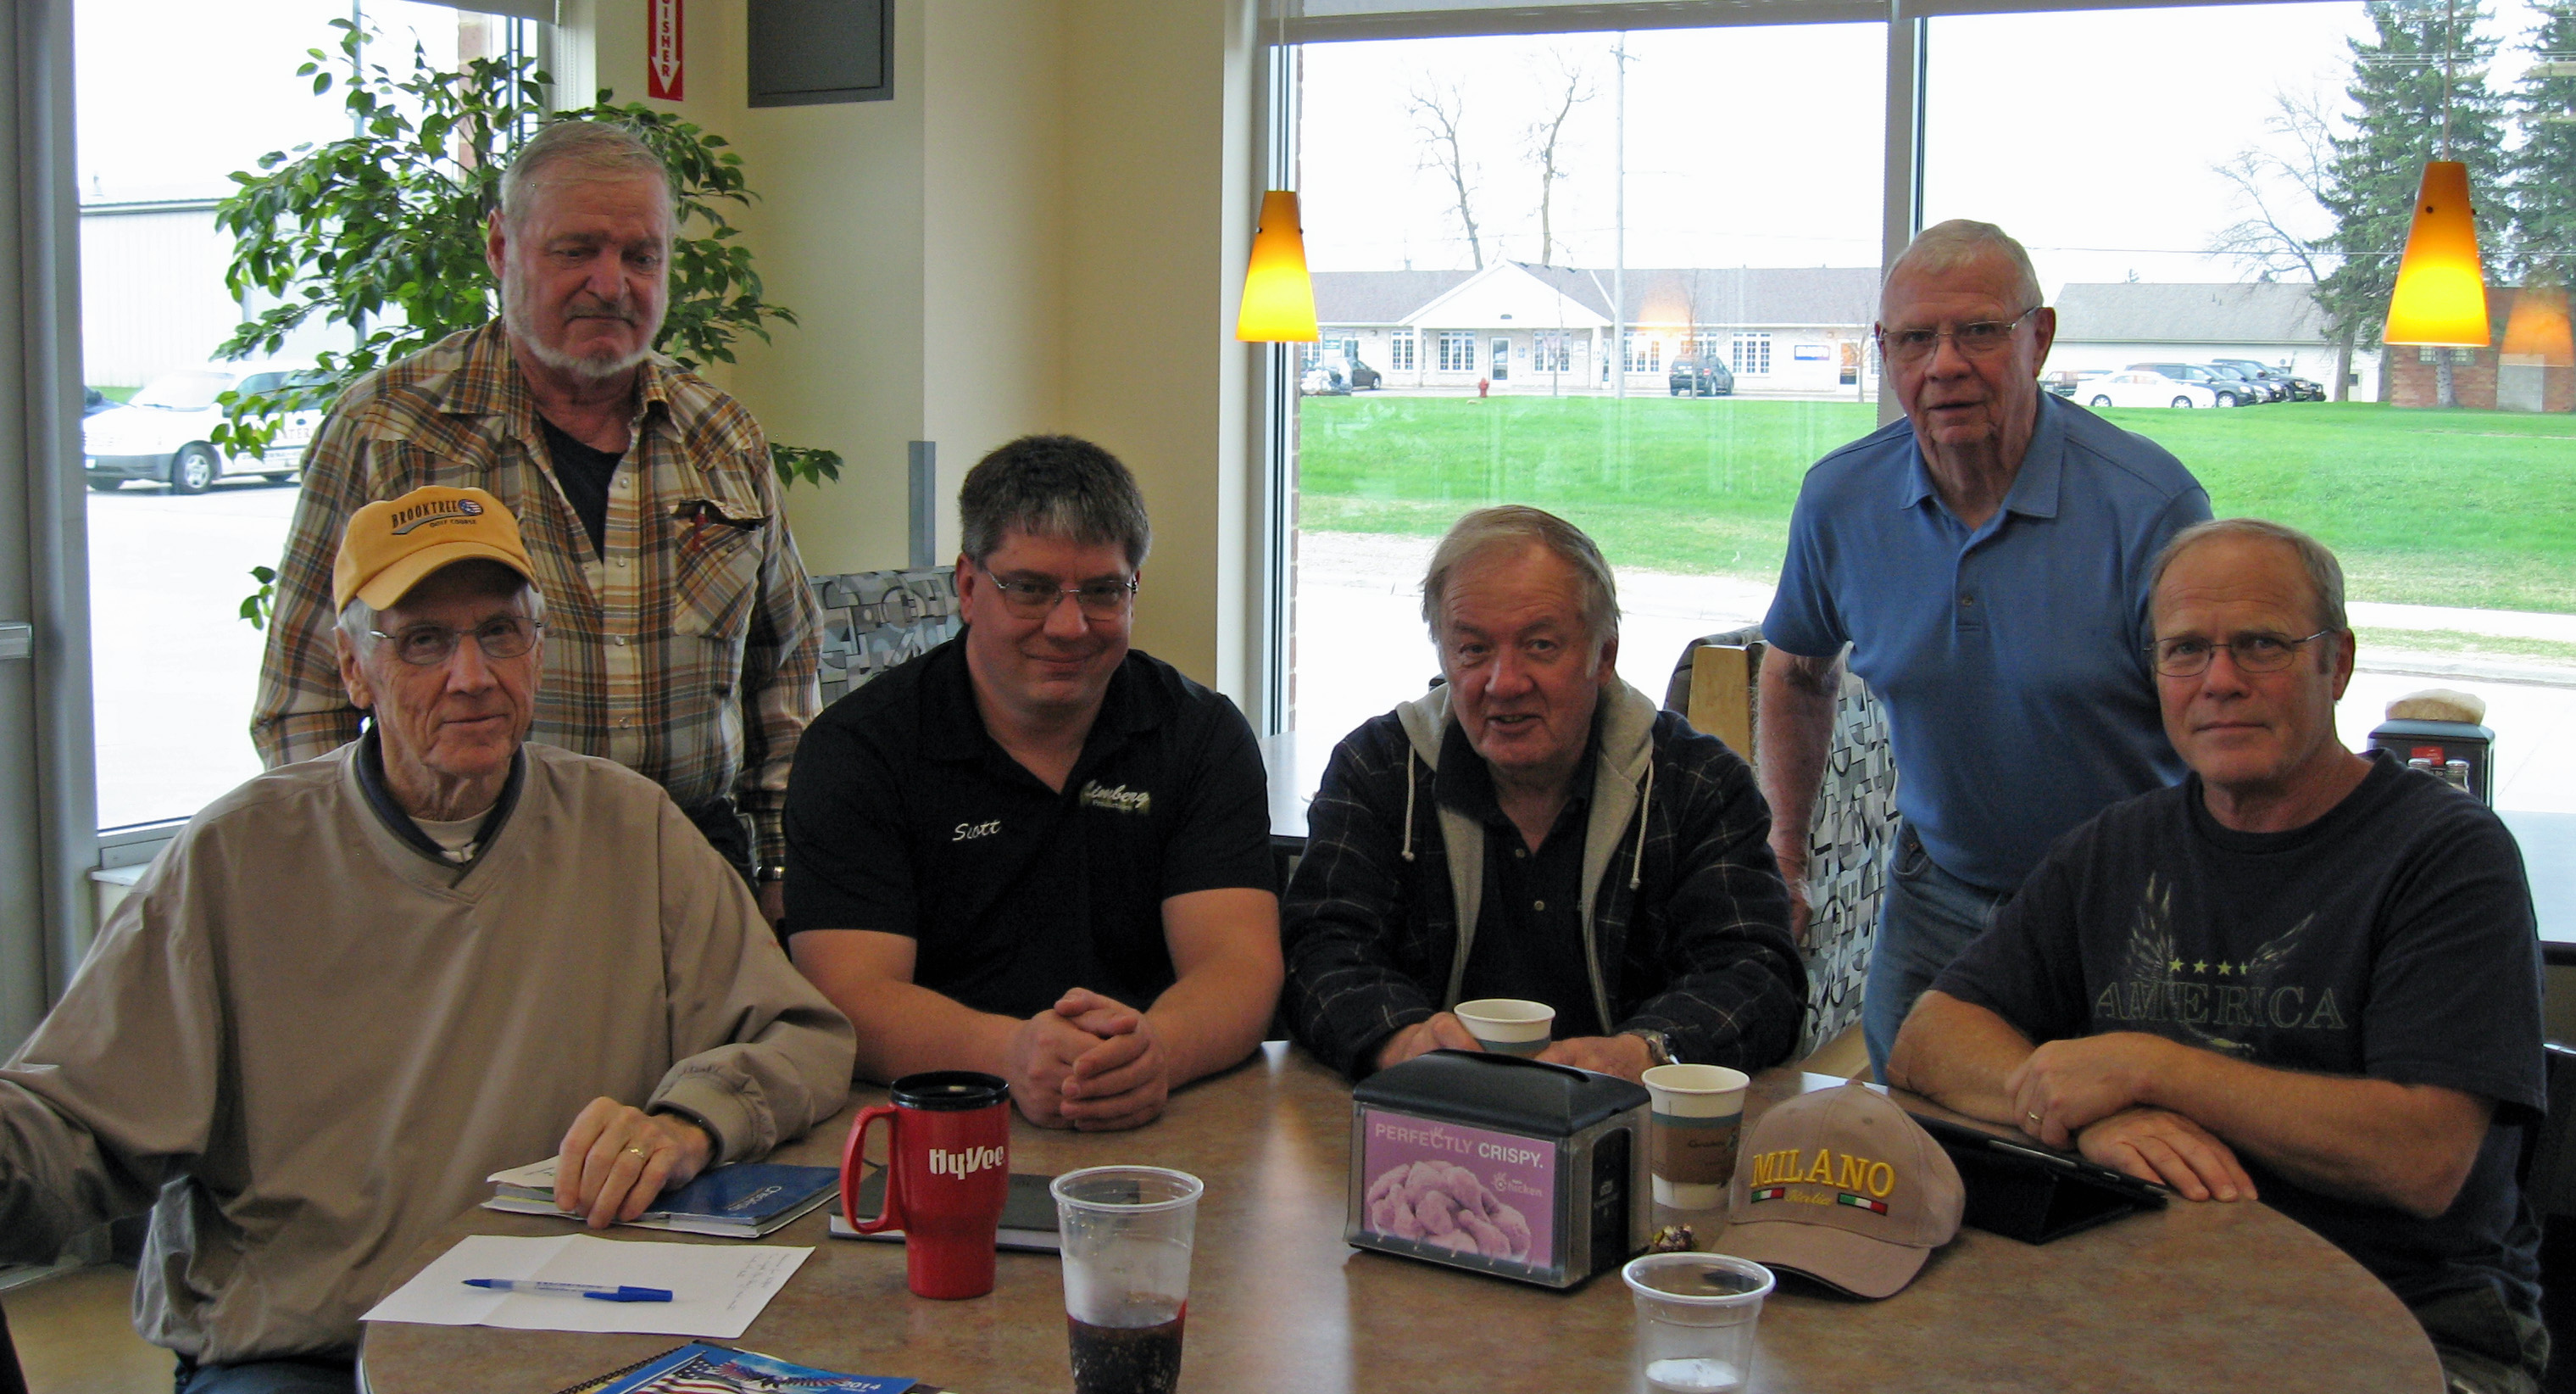 Sharing stories at the Veterans Open Round Table